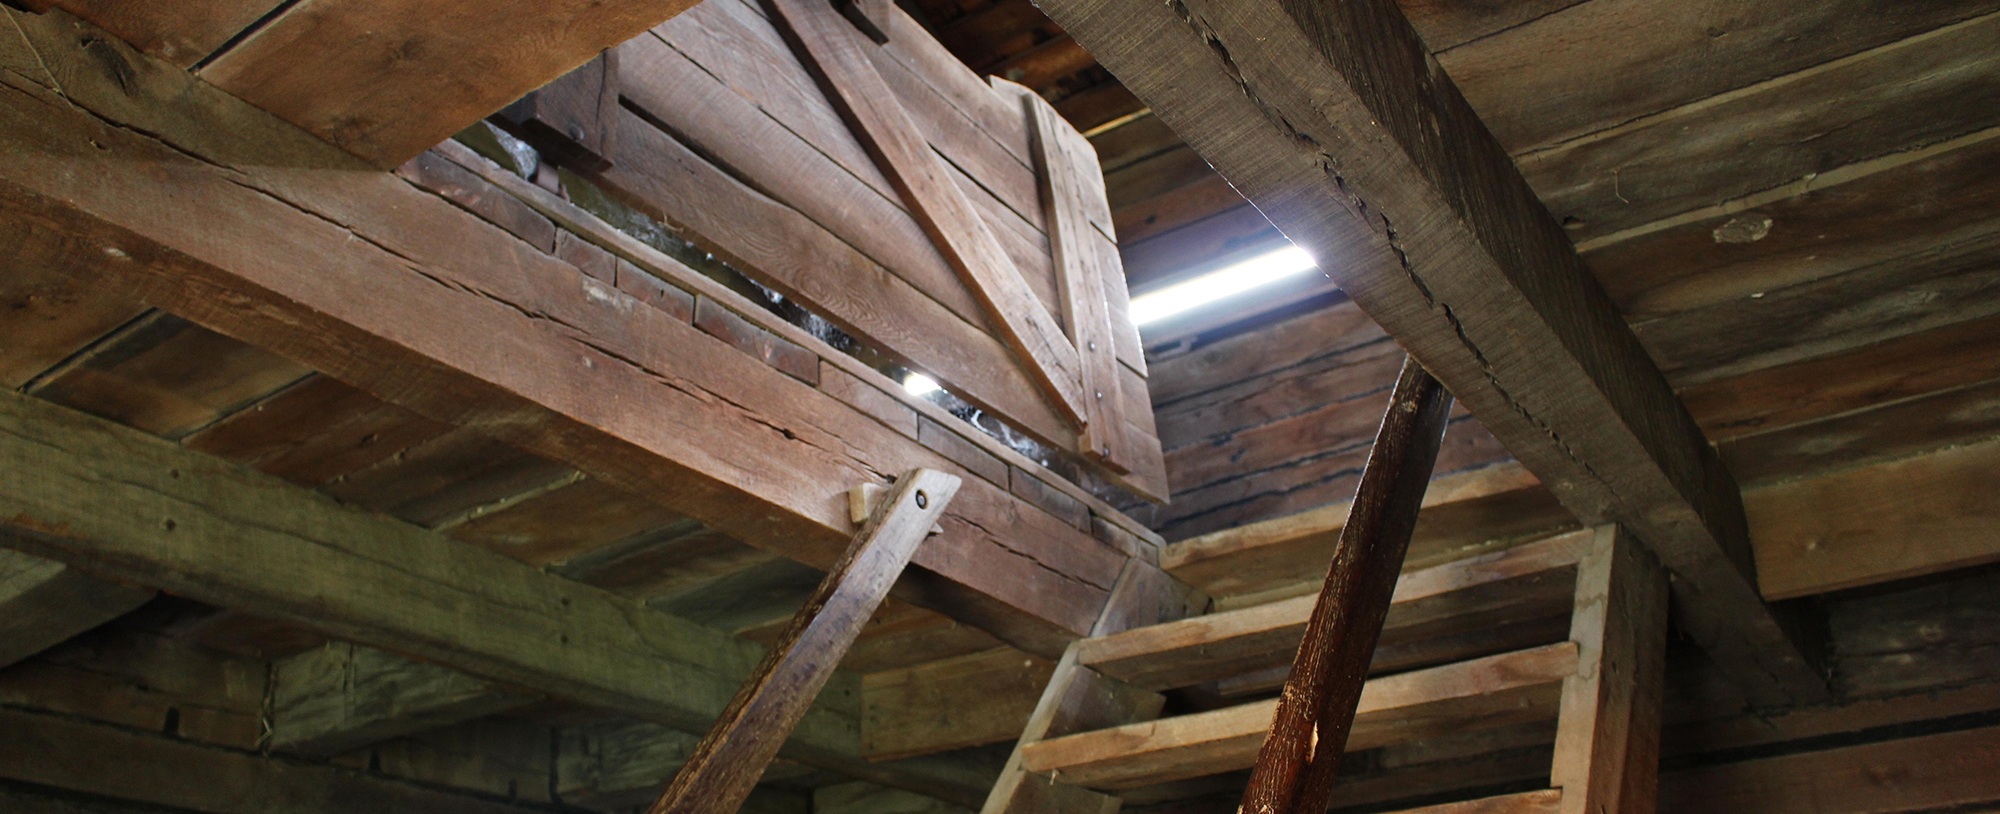 issues that can arise in your attic during winter